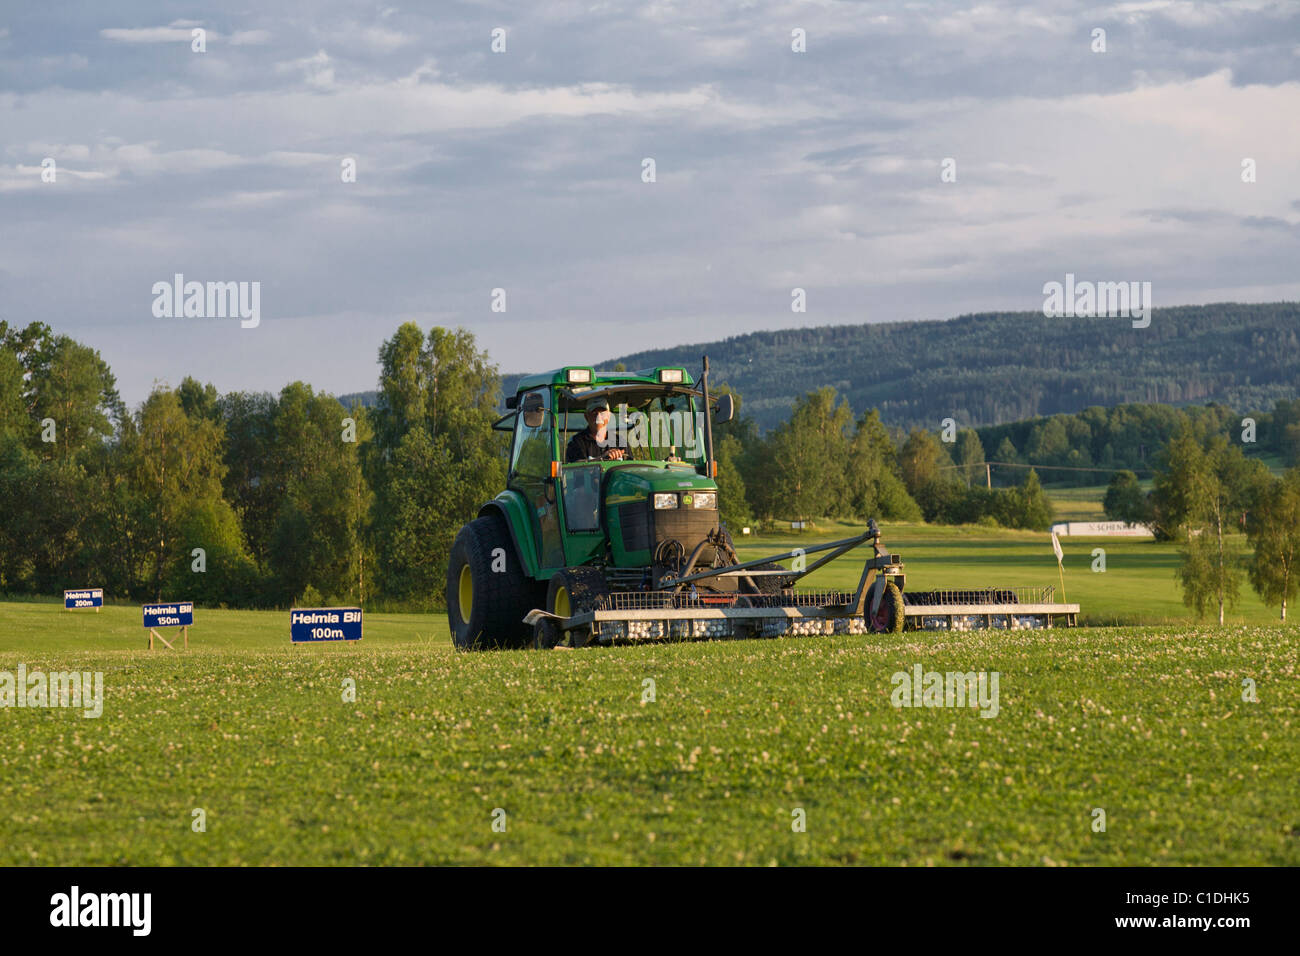 Tractor gathering golf balls at a driving range at the end of the day in Varmland, Sweden. - Stock Image